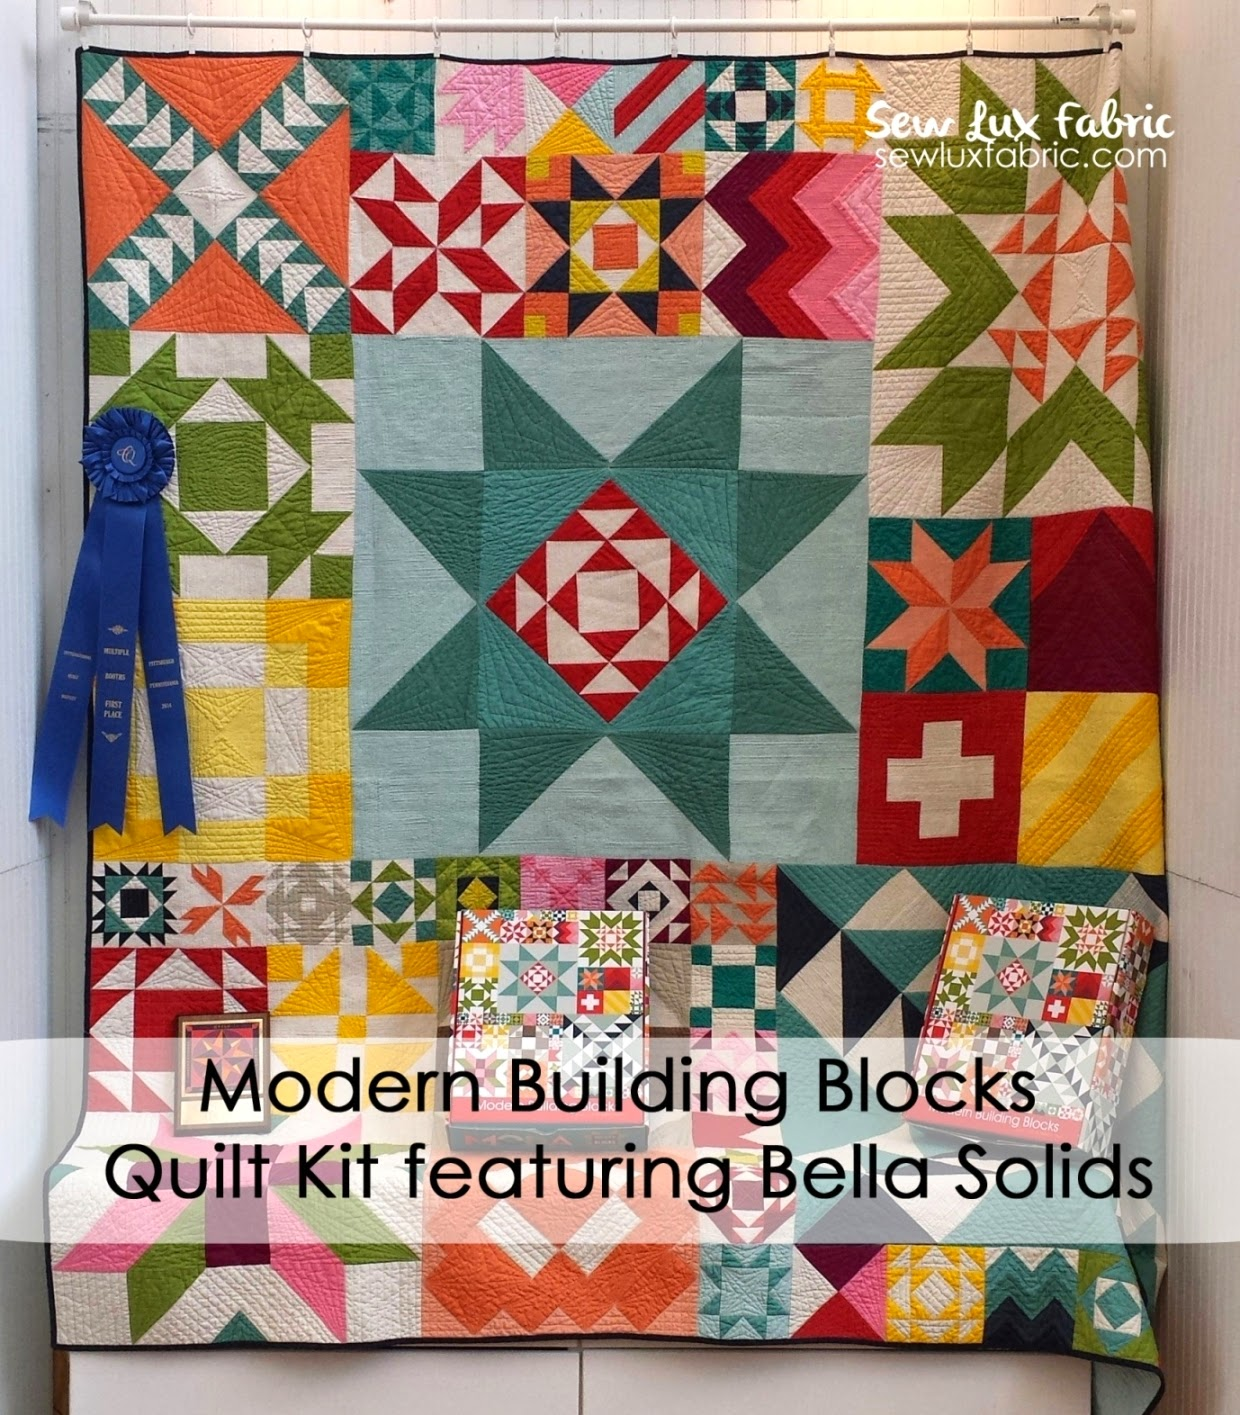 Sew Lux Fabric : Blog: Modern Building - 422.1KB